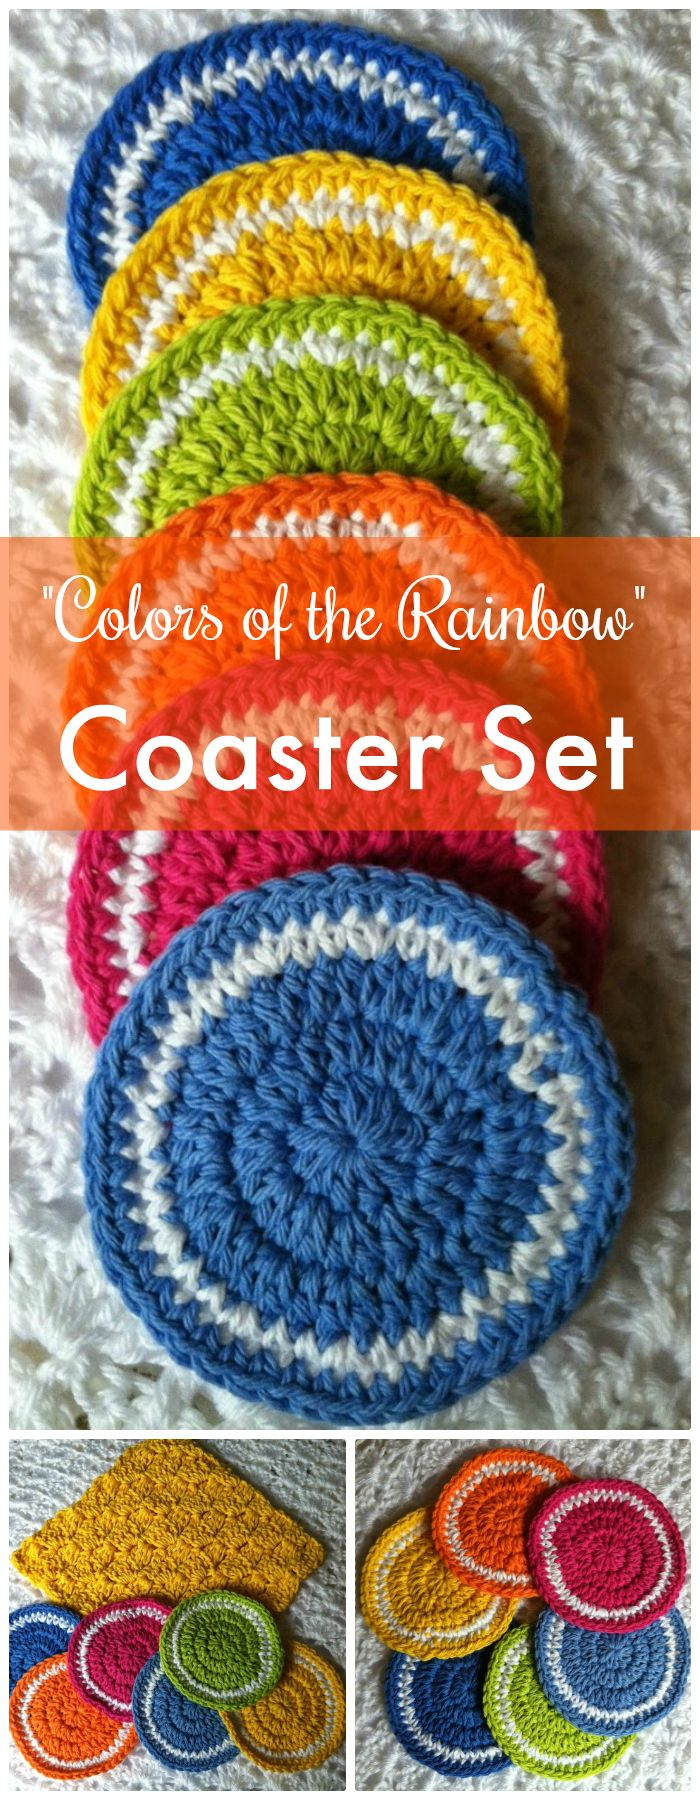 Colors of the Rainbow Coaster - free crochet coaster patterns | Free Crochet Coaster Patterns